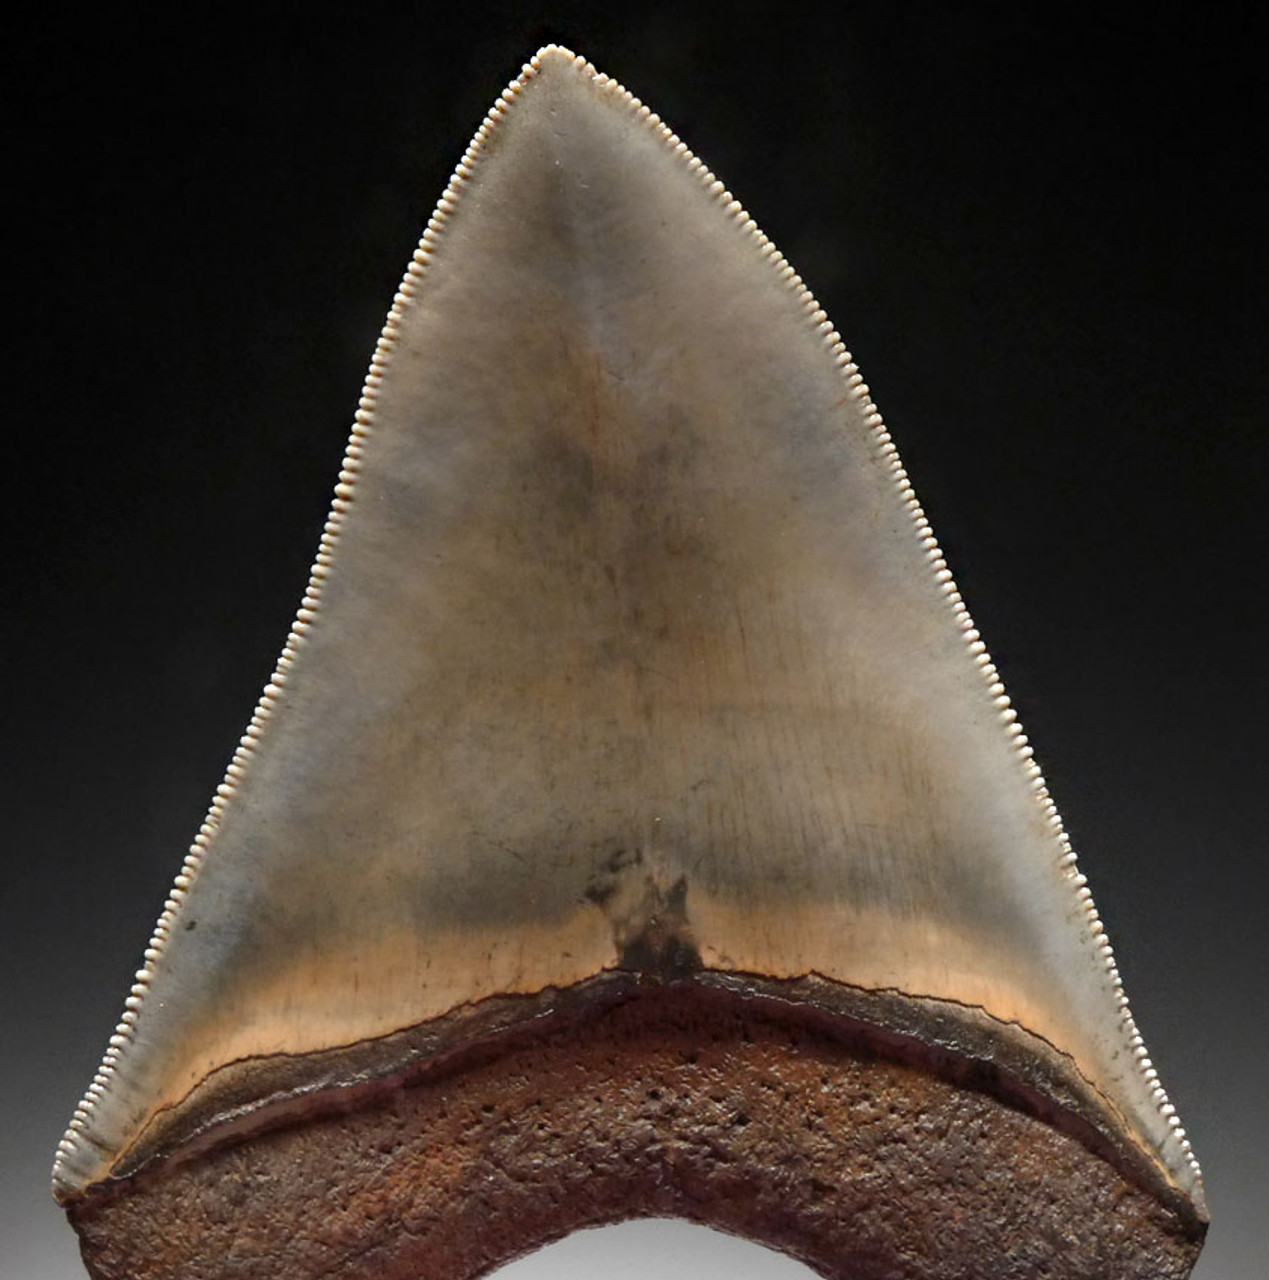 INVESTMENT GRADE 3.75 INCH MEGALODON SHARK TOOTH WITH MOTTLED SILVERY GREEN AND GOLD CREAM ENAMEL *SH6-382